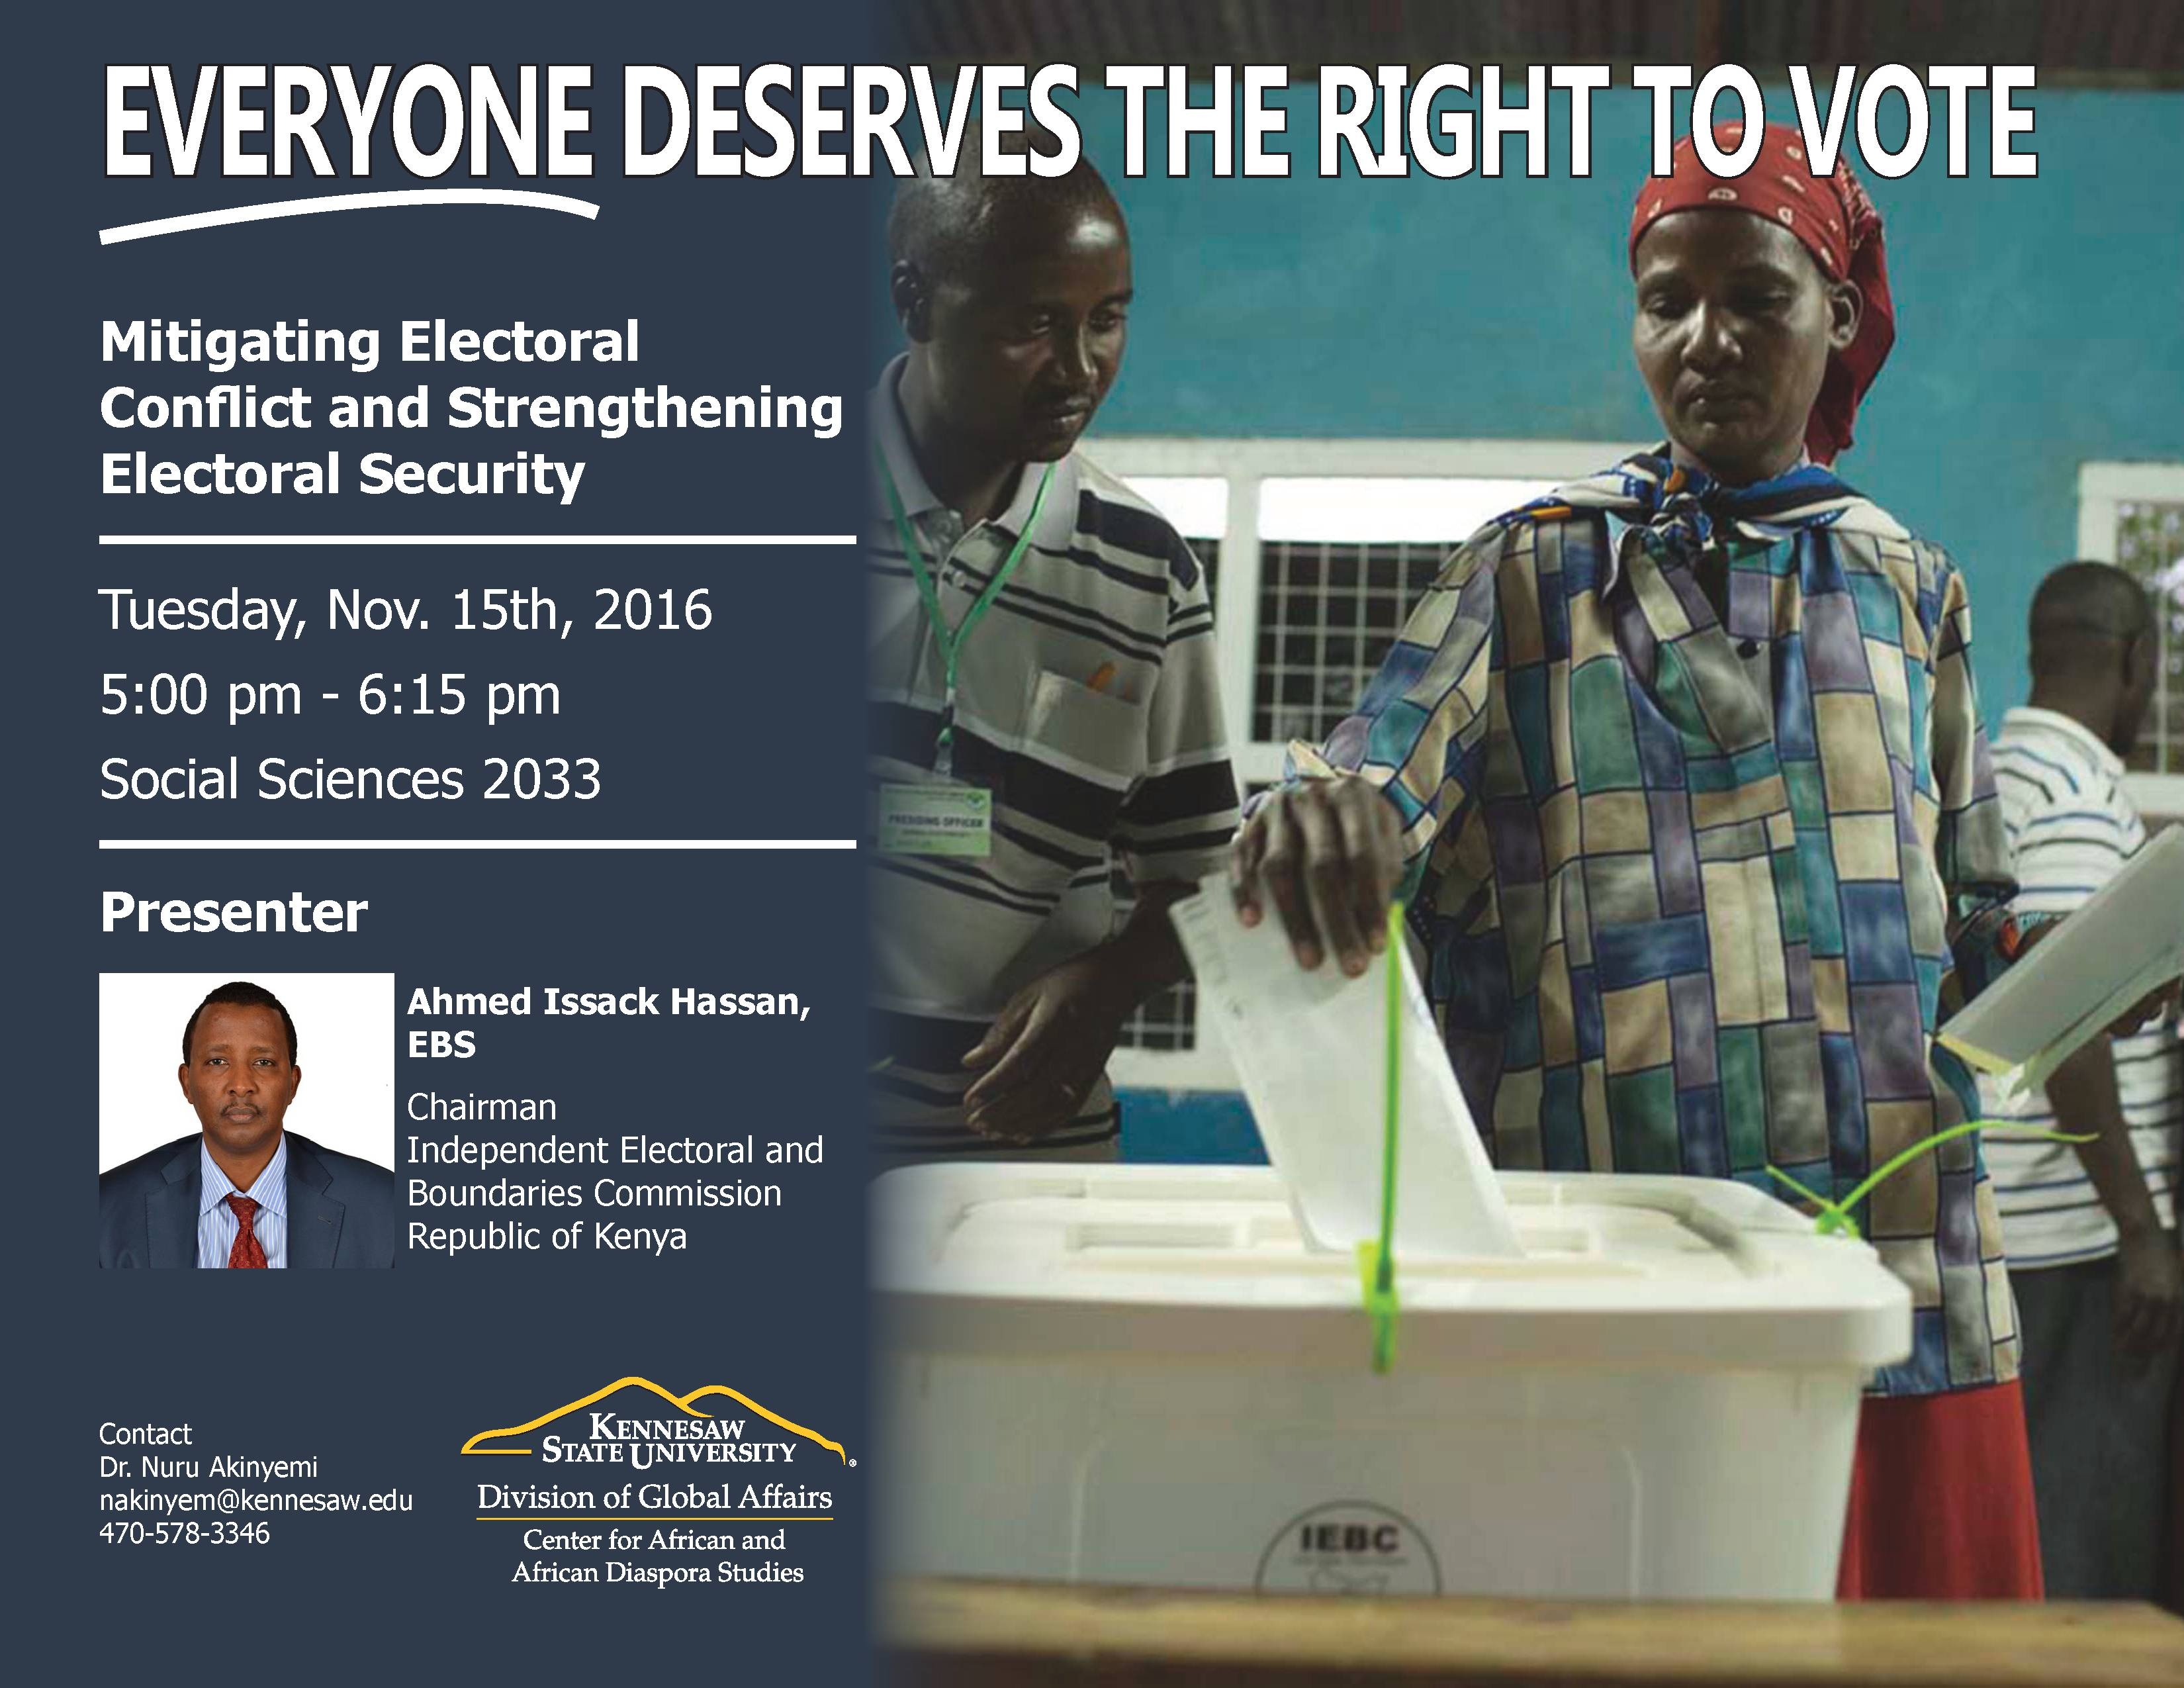 Mitigating election conflict